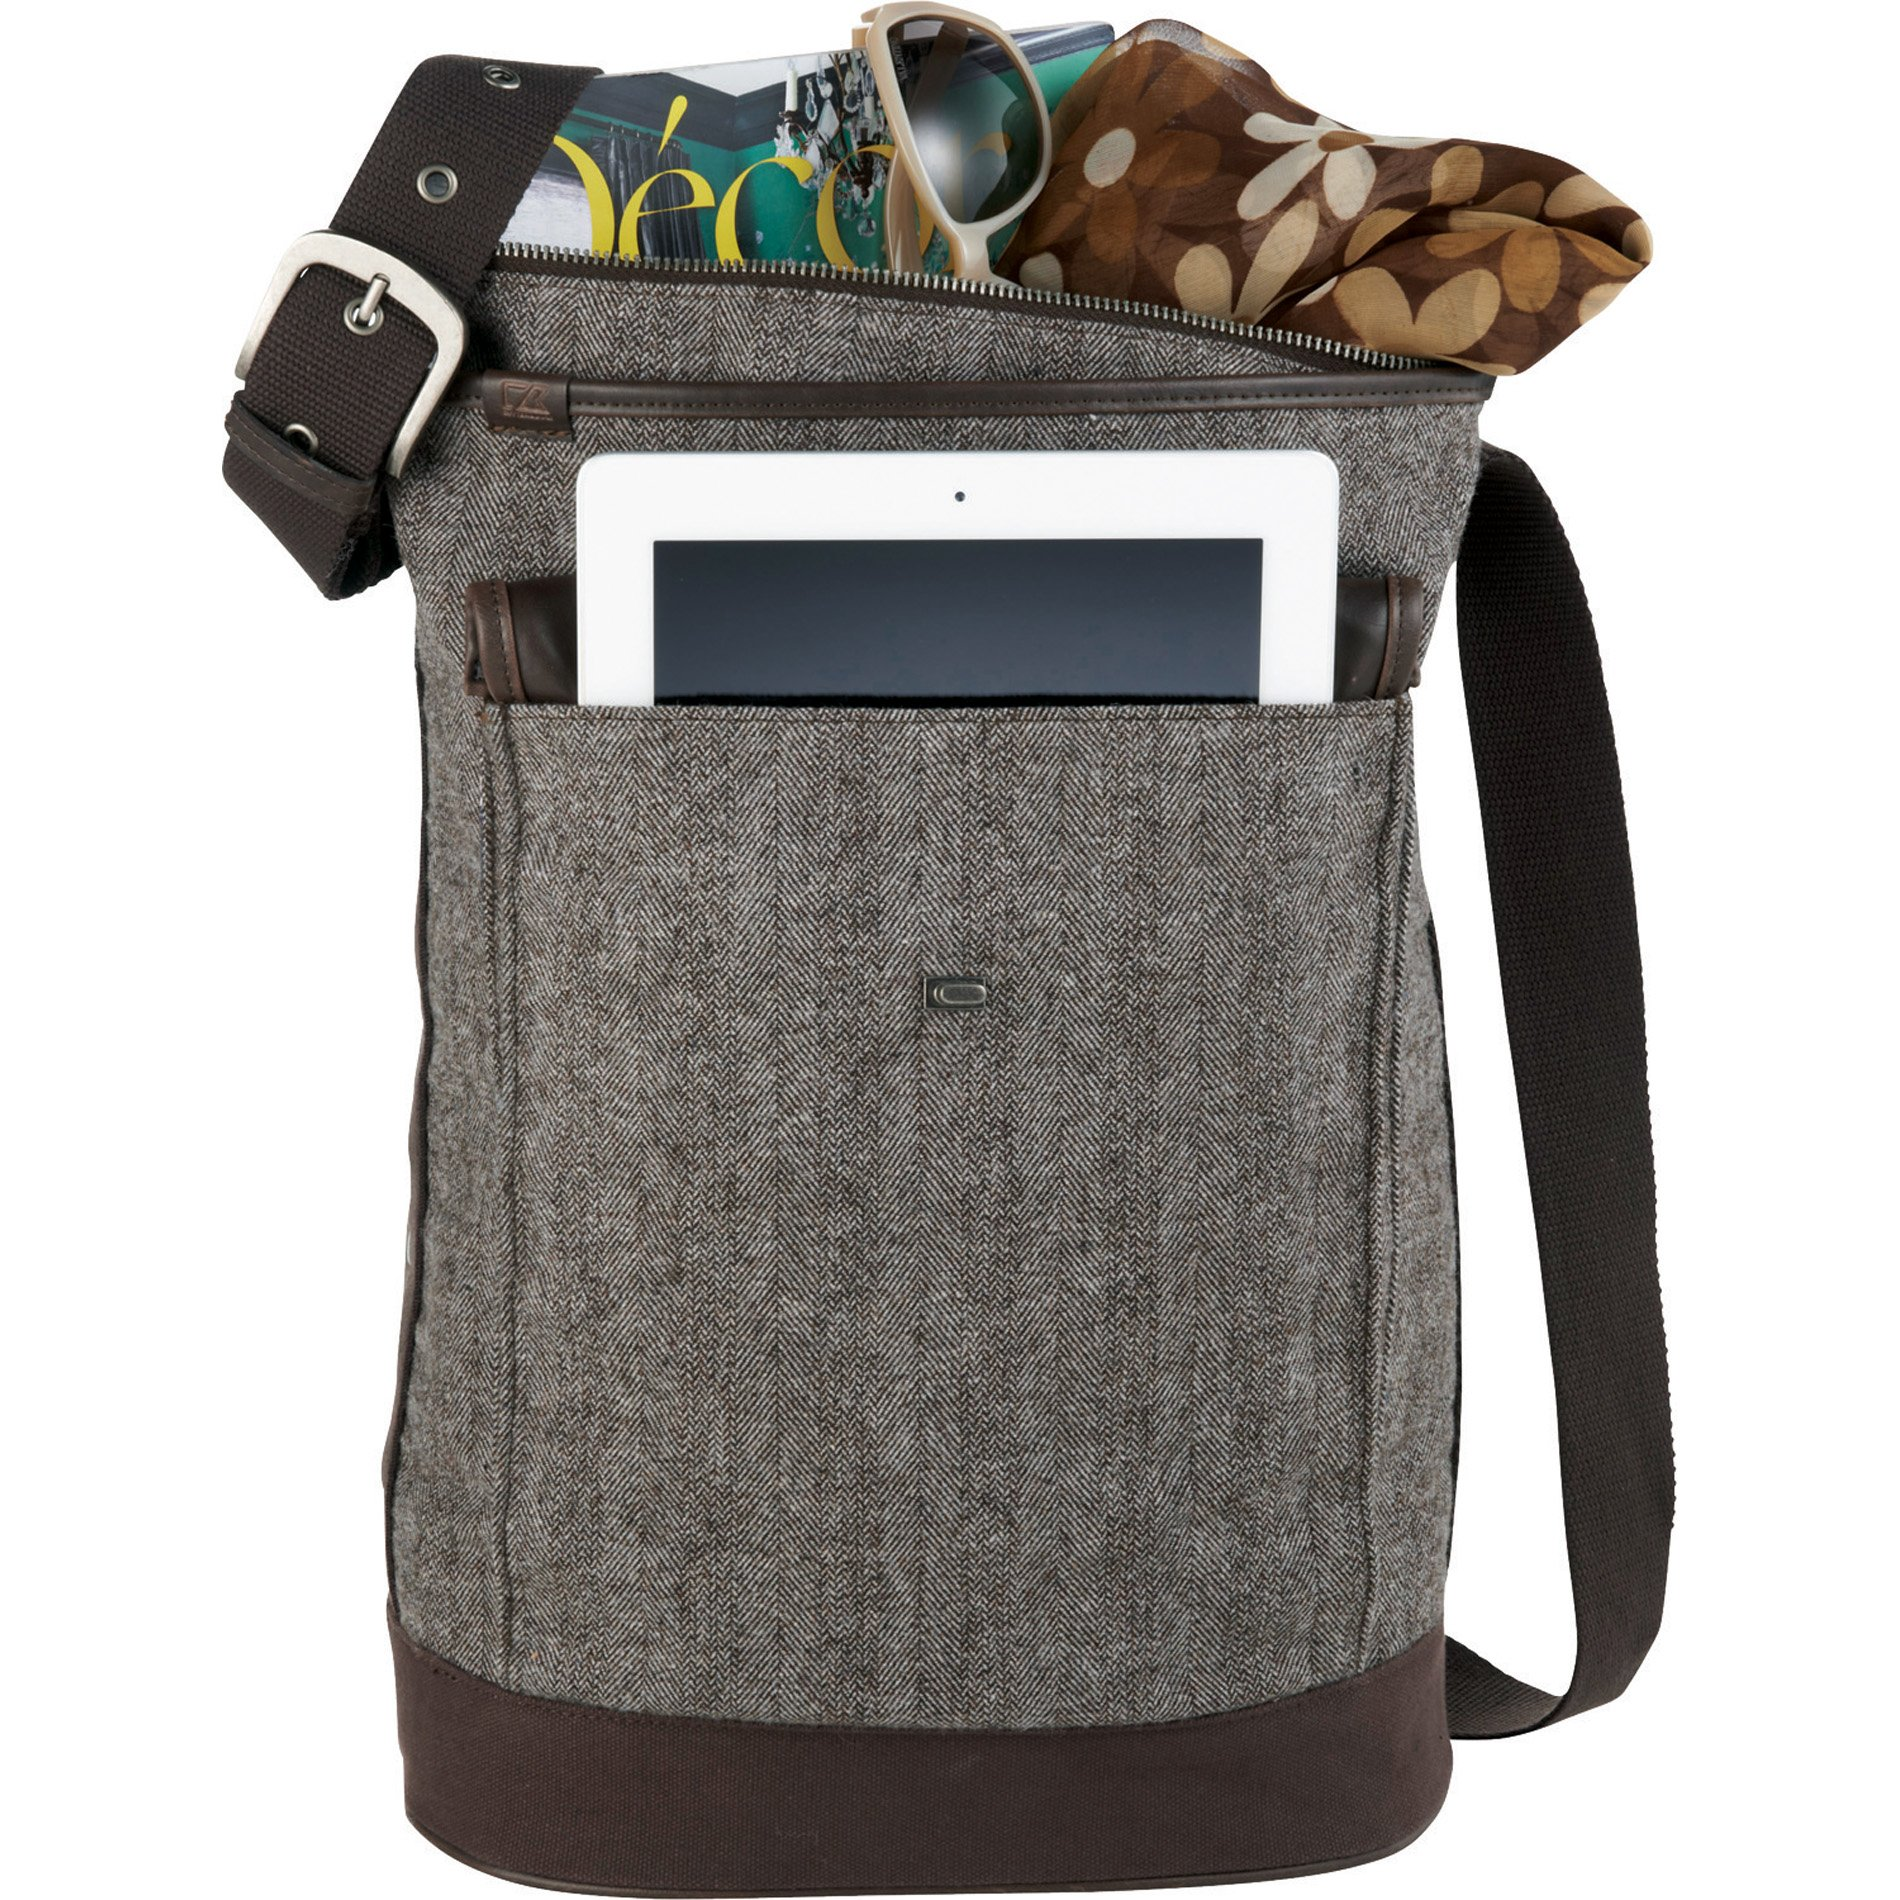 Cutter & Buck Pacific Fremont Tote Bag